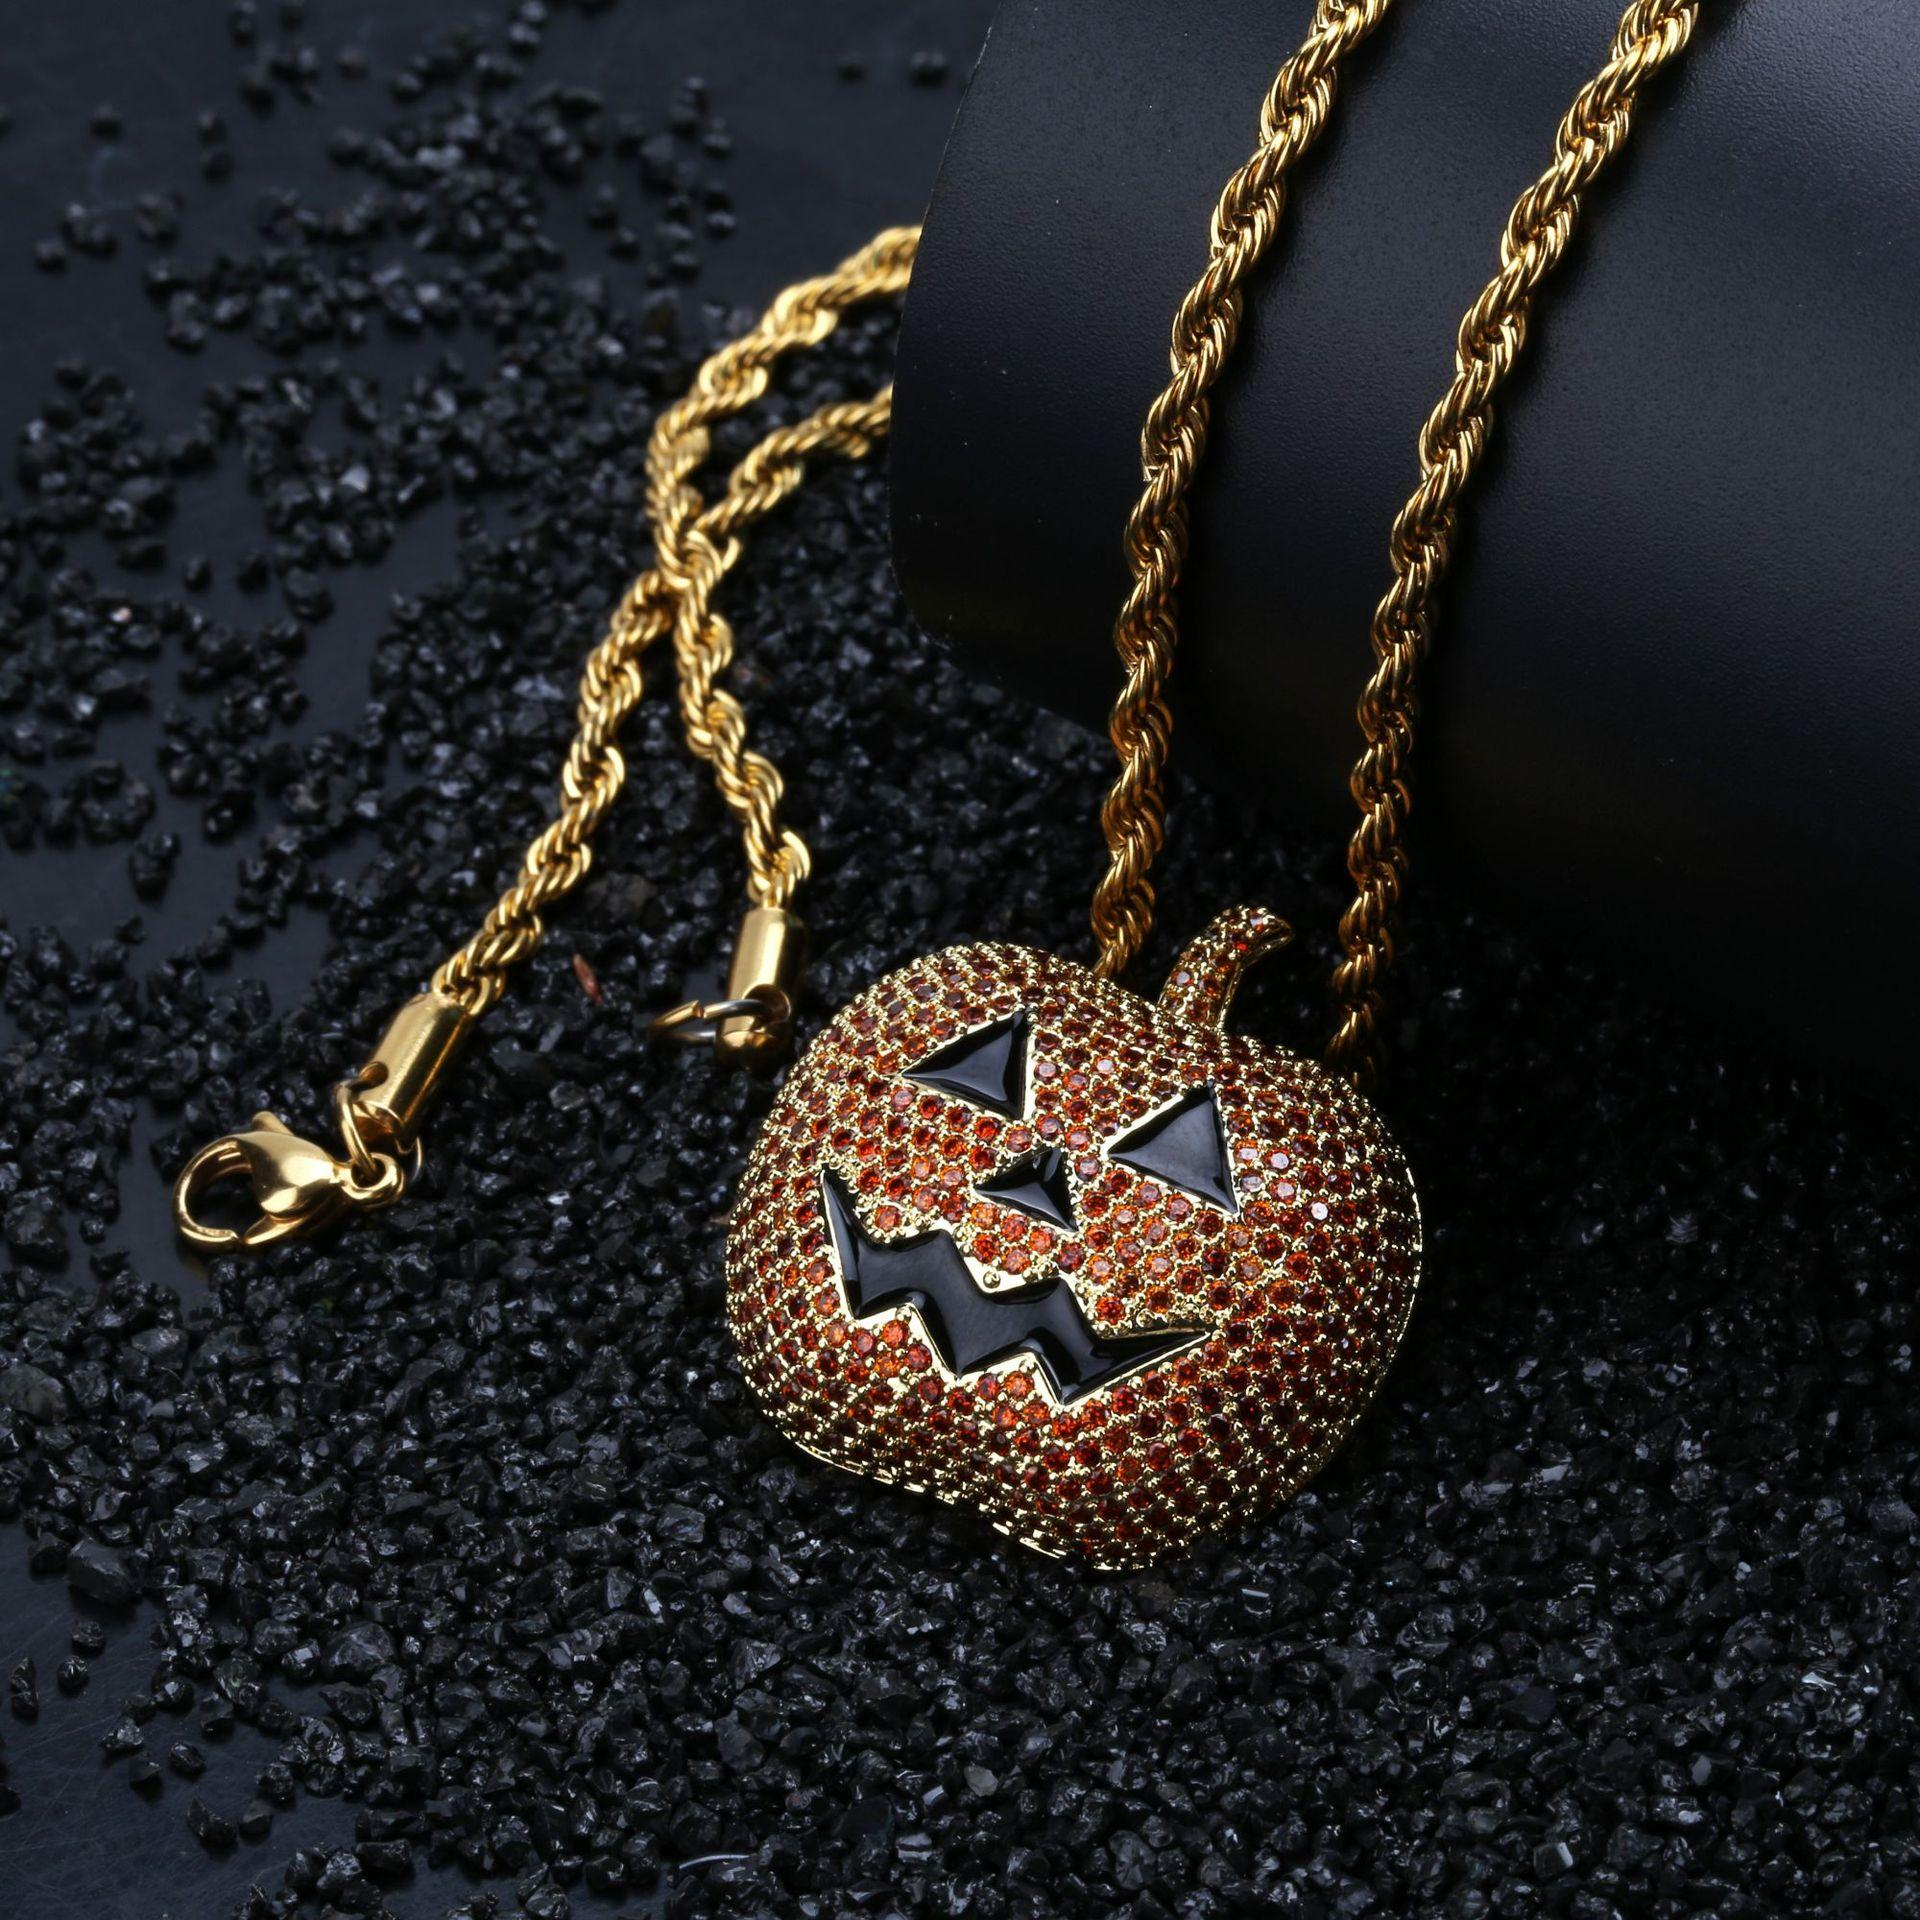 New Fashion 18K Gold Plated Halloween Jack O Lantern Pendant Necklace Twist Chain Iced Out CZ Zirconia Hip Hop Cosplay Party Jewelry Gifts